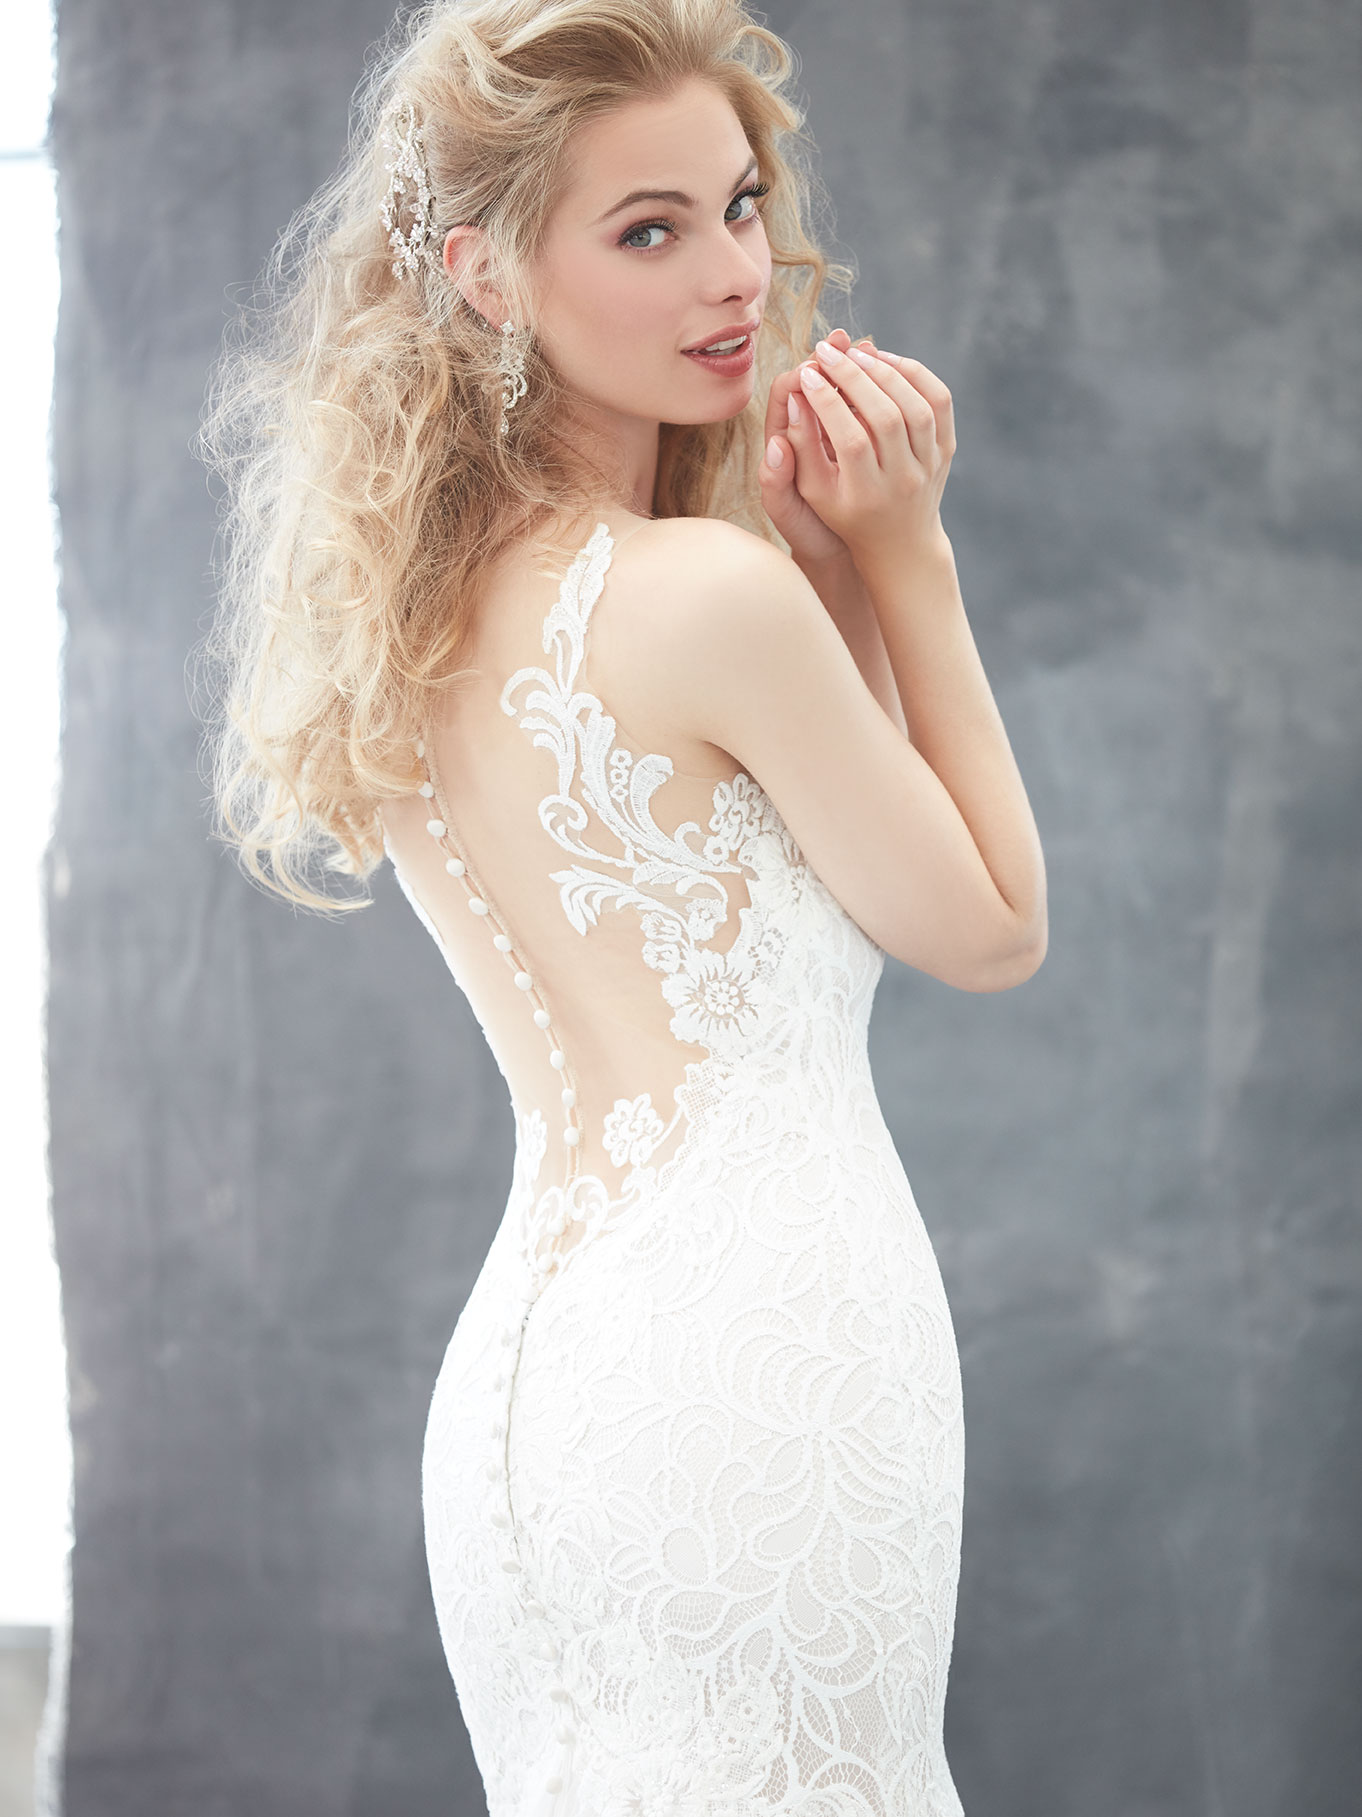 Lace wedding dress featuring a sexy open back, Madison James 2017 Trunk Show coming to Raffaele Ciuca, Melbourne